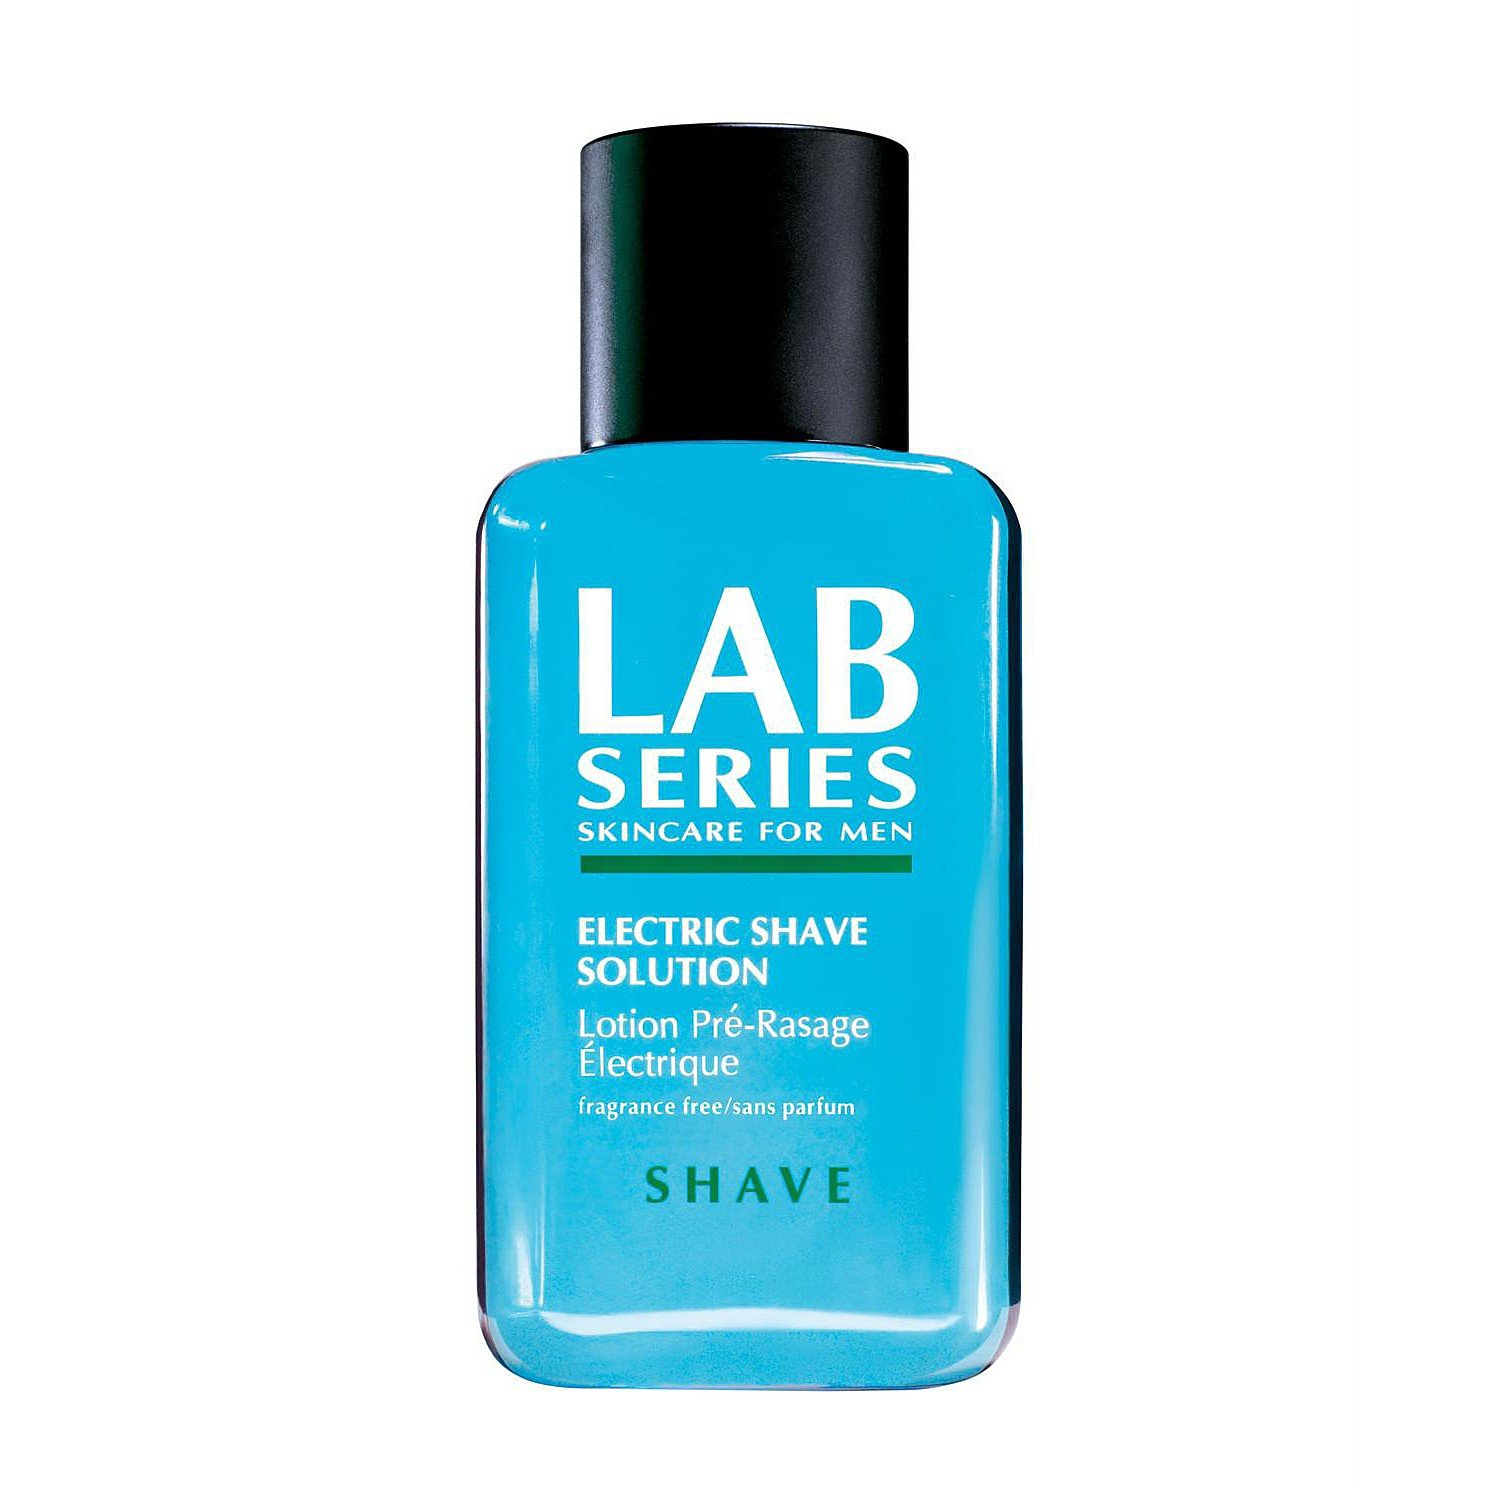 Lab Series Men's Electric Shave Solution No Color Hair Removal 2EEM-01 26733_-100 ml